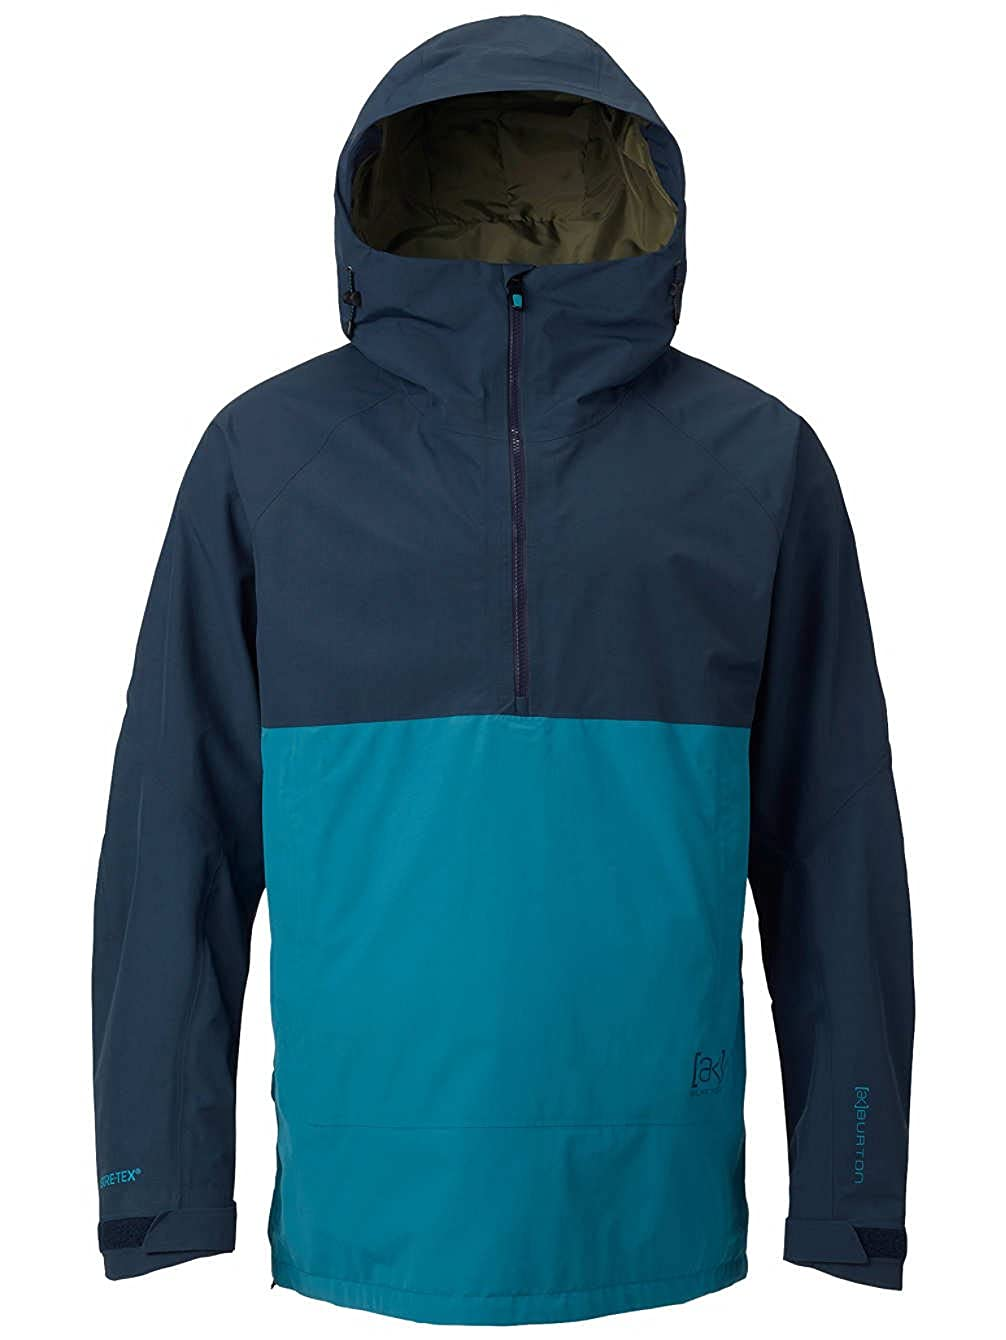 Burton OUTERWEAR メンズ Mountaineer/Mood Indigo Large